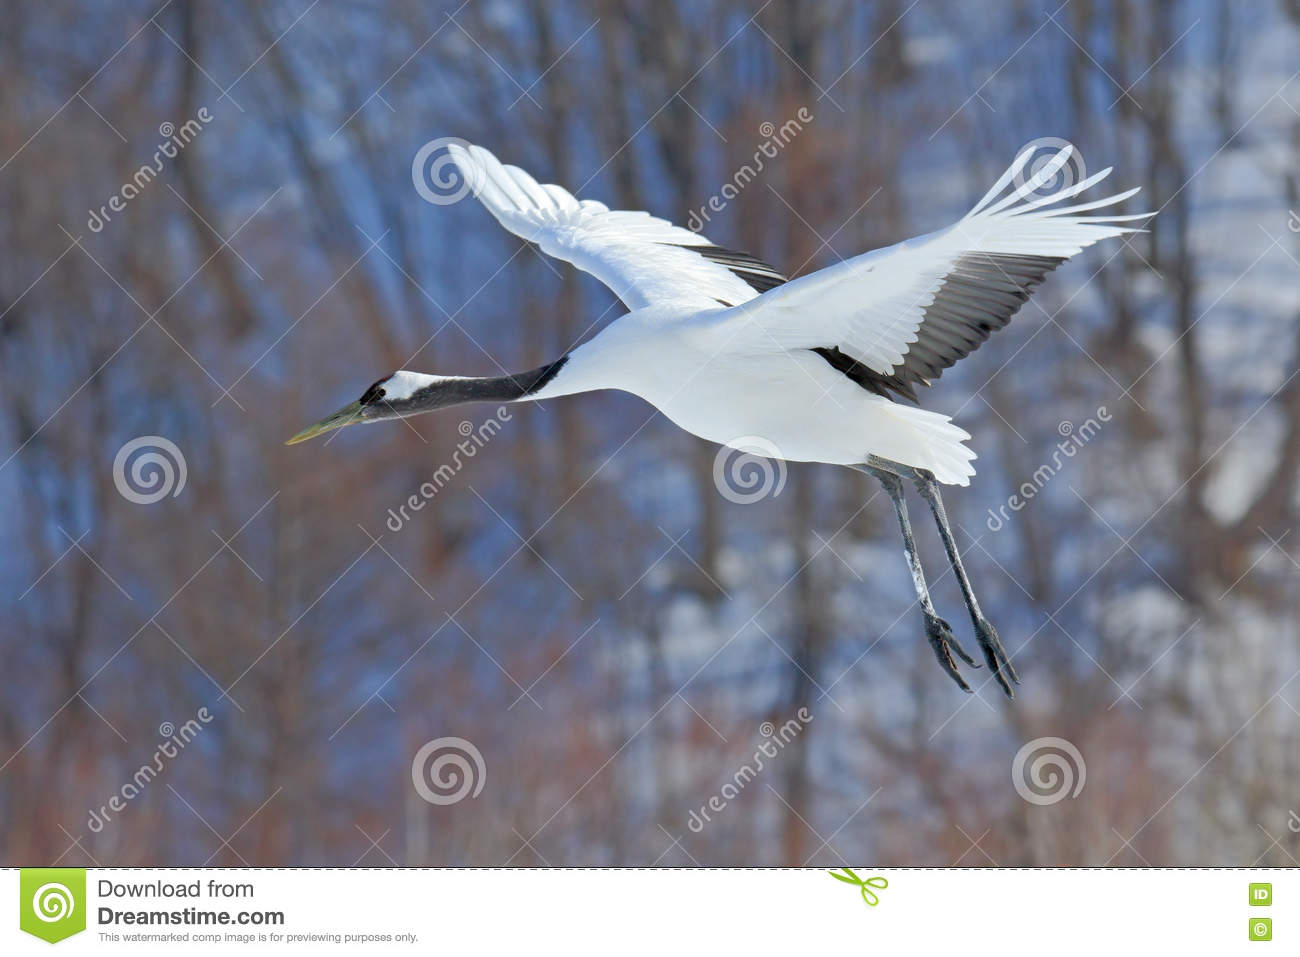 Flying White bird Red-crowned crane, Grus japonensis, with open wing, with snow storm, forest habitat in the background